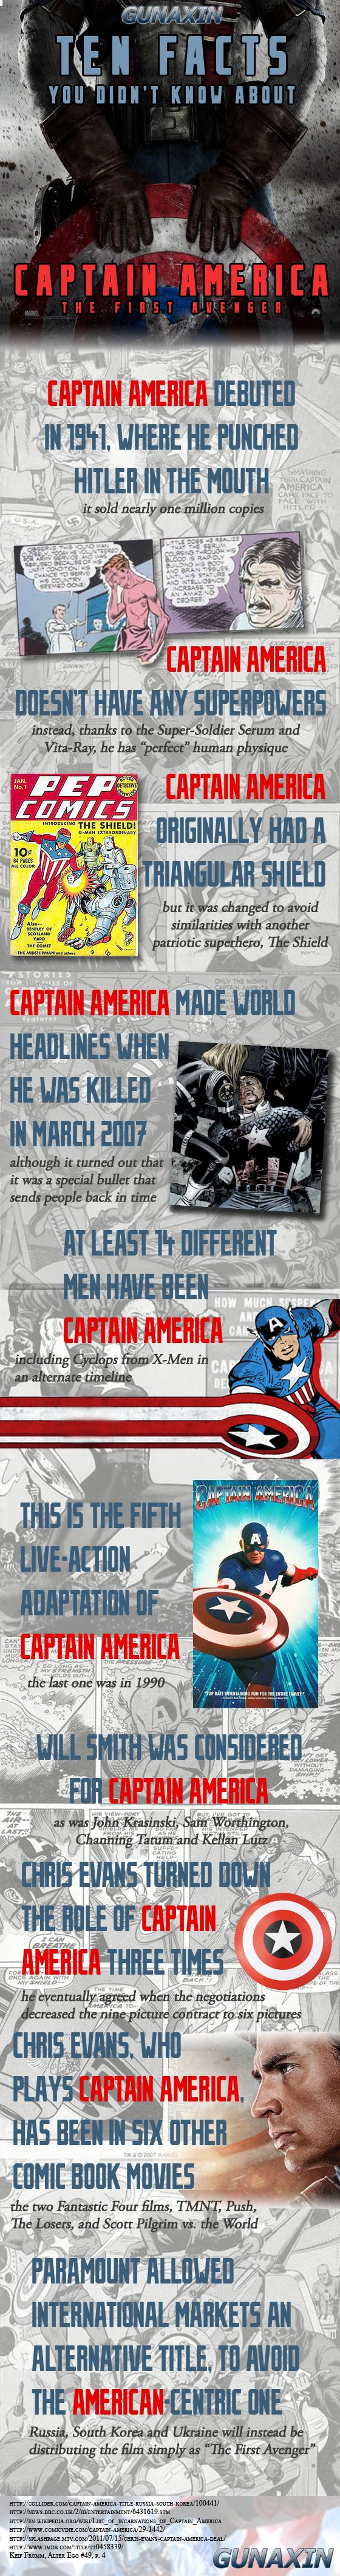 10 Facts You Didn't Know About Captain America >>>> I actually knew most of these, but they are great to reference!